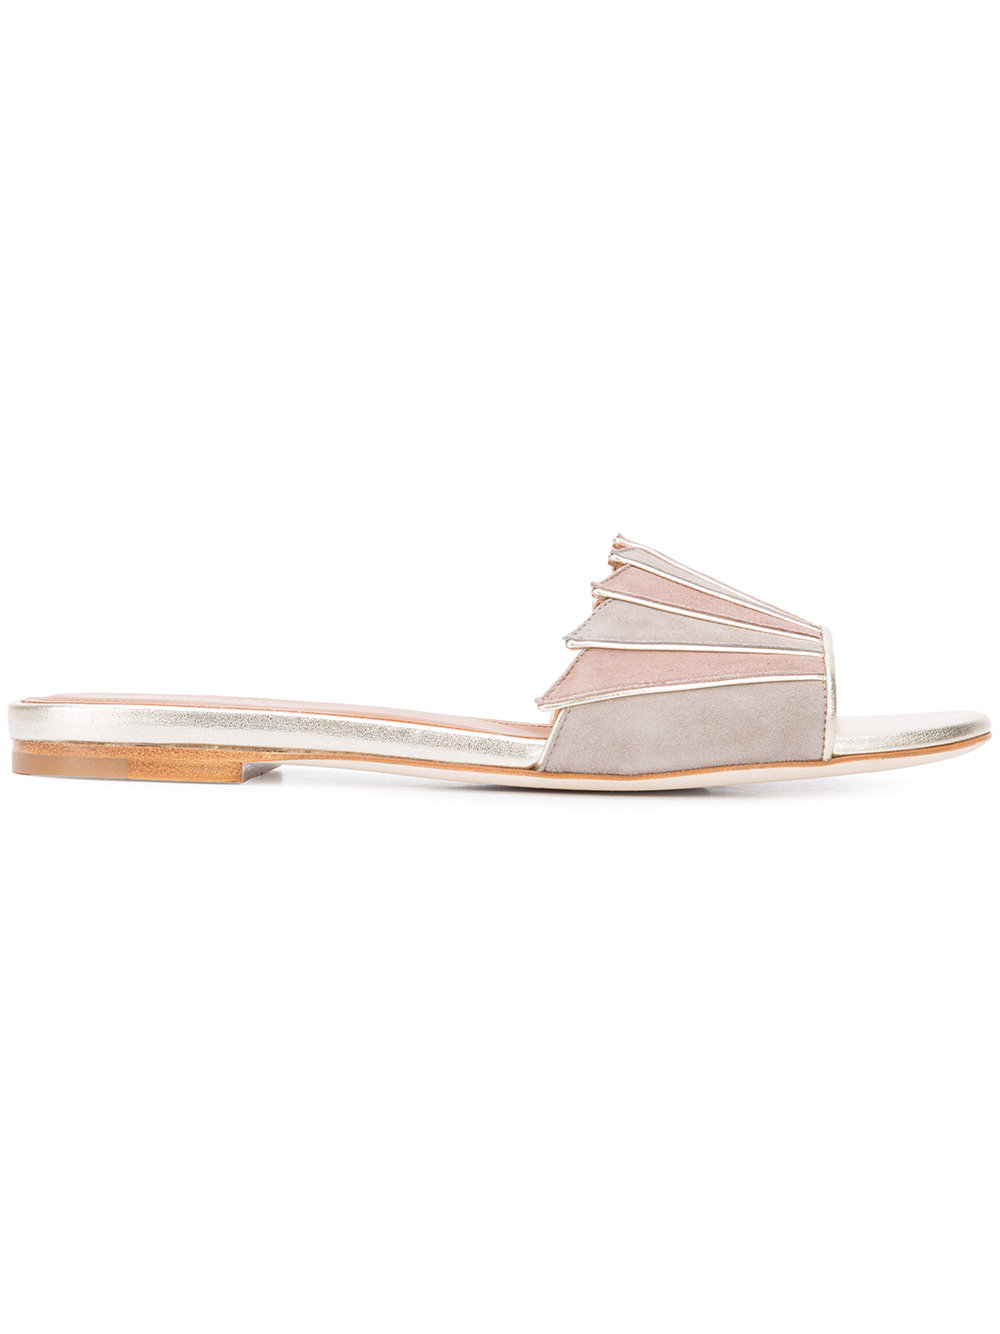 MALONE SOULIERS - Louisa flat sandals  $580